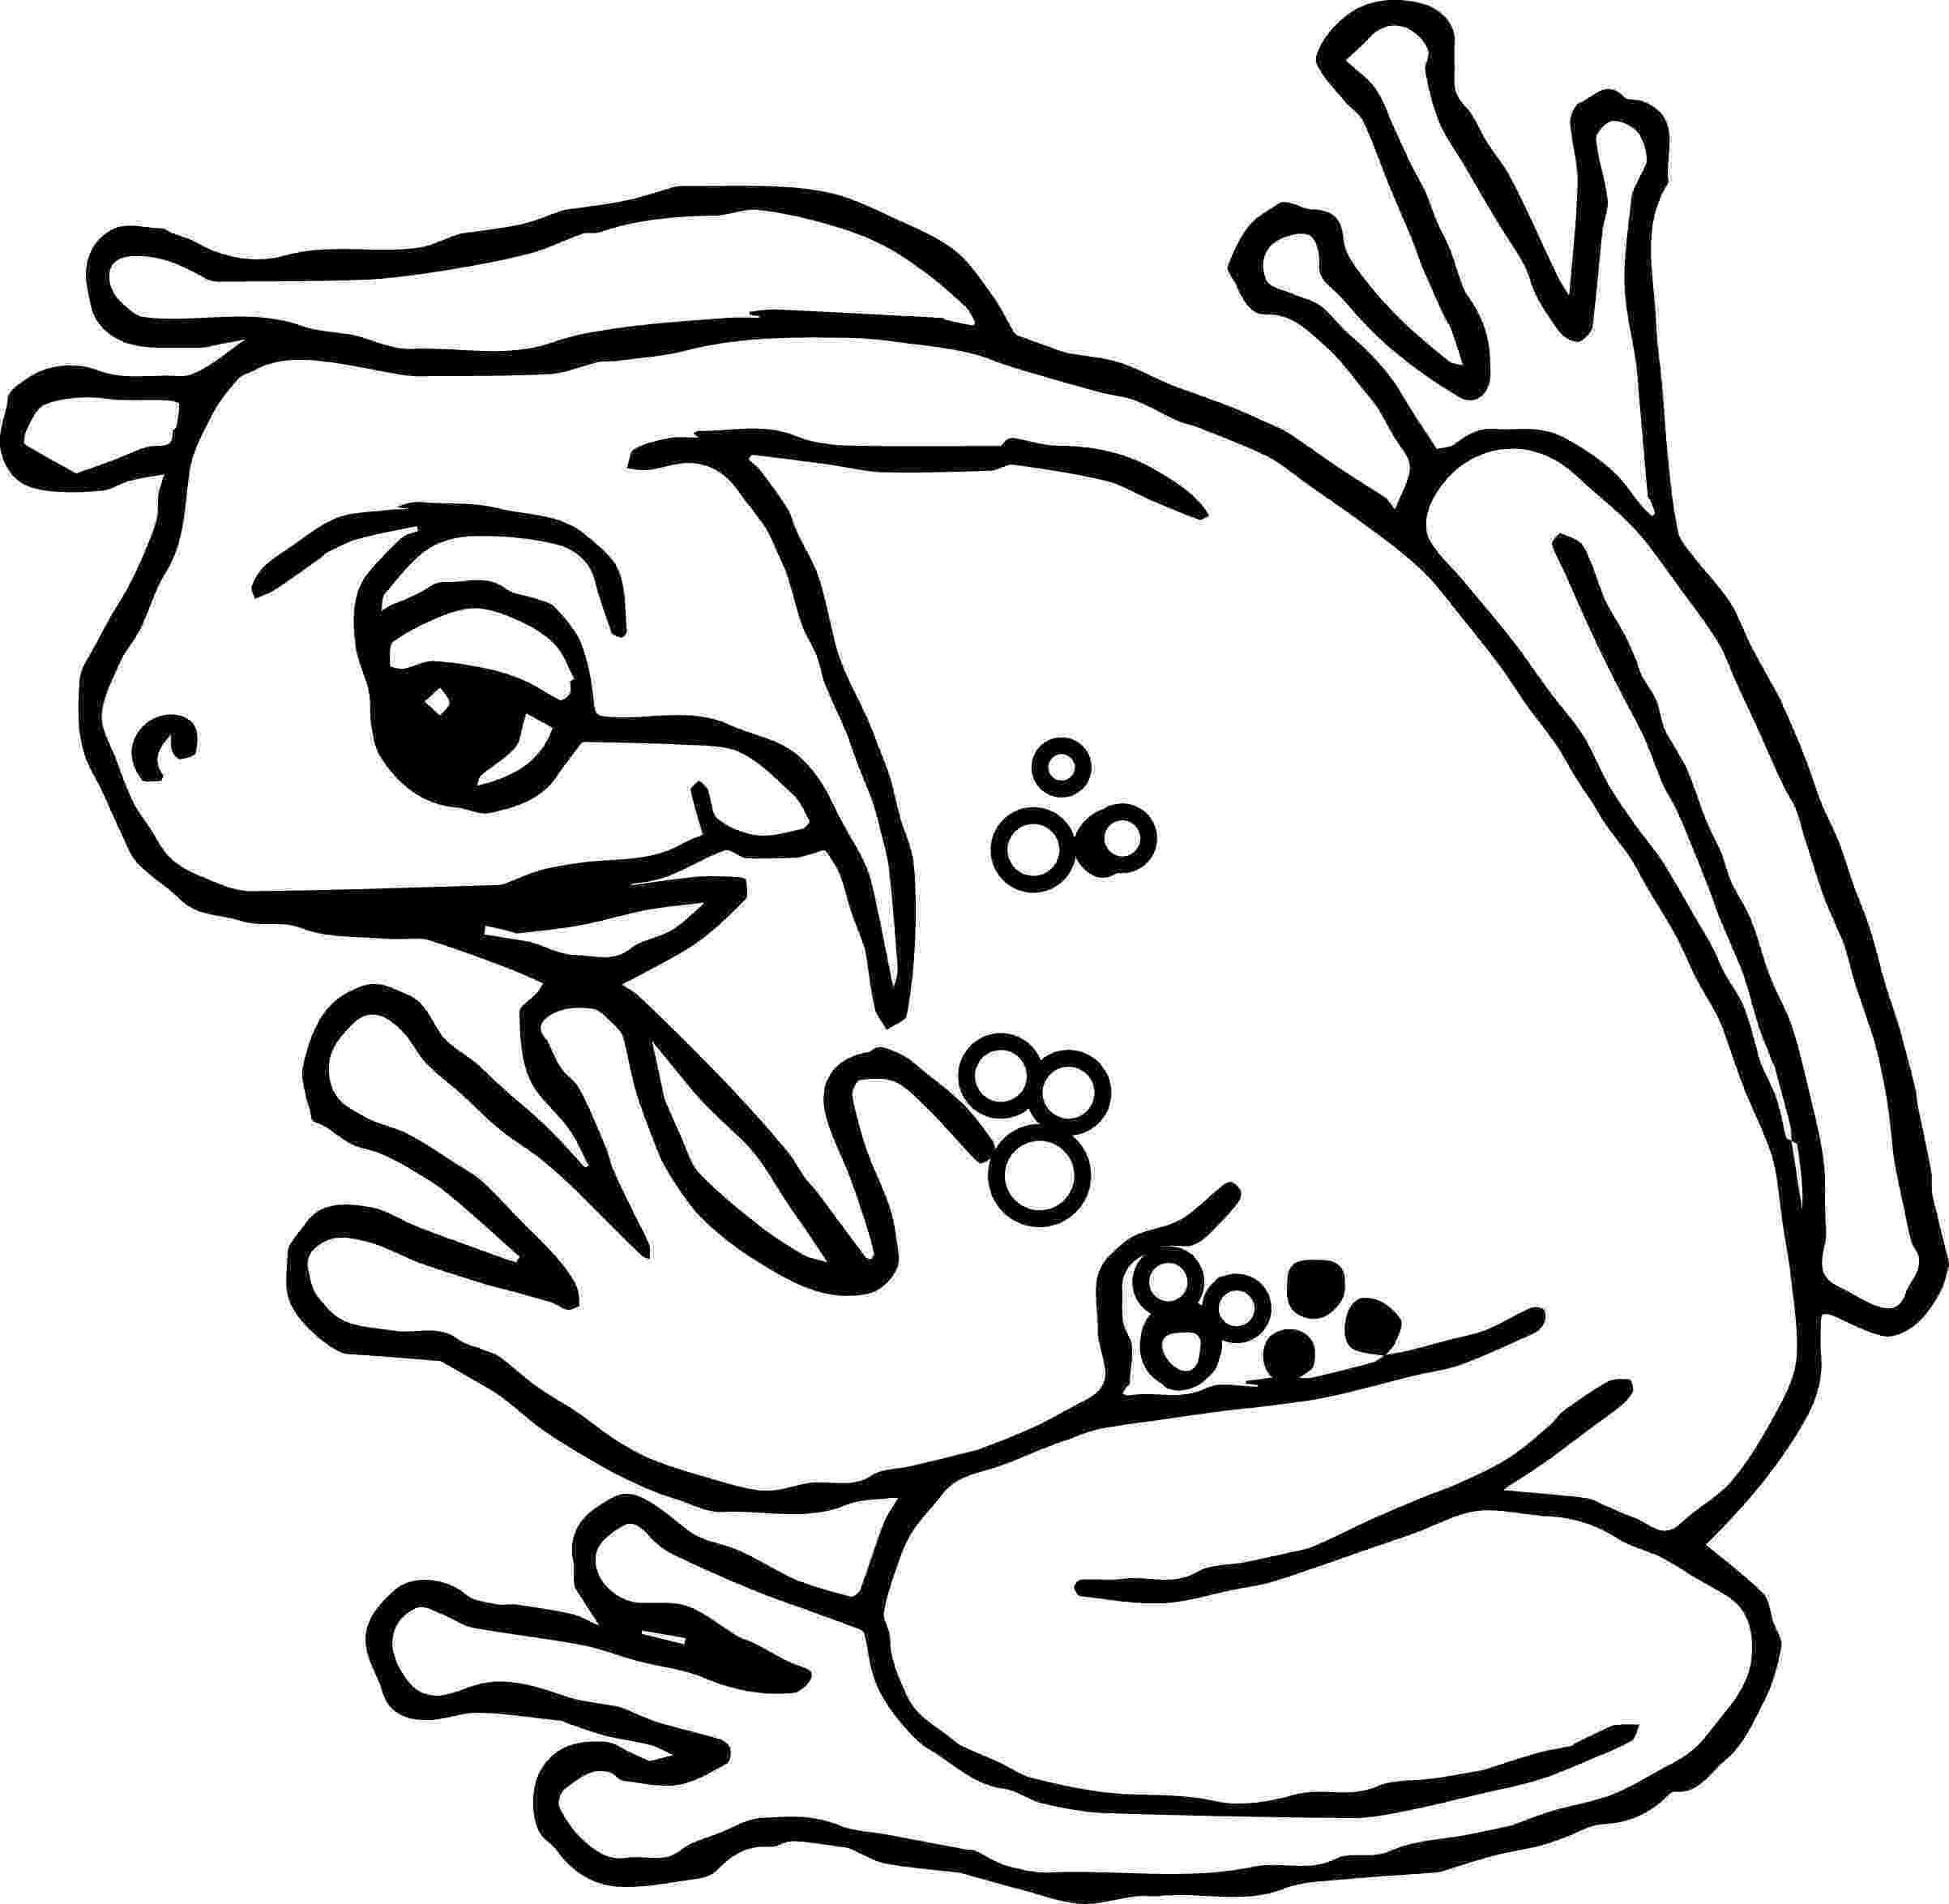 amphibian coloring pages frog holding flower coloring page free printable pages coloring amphibian